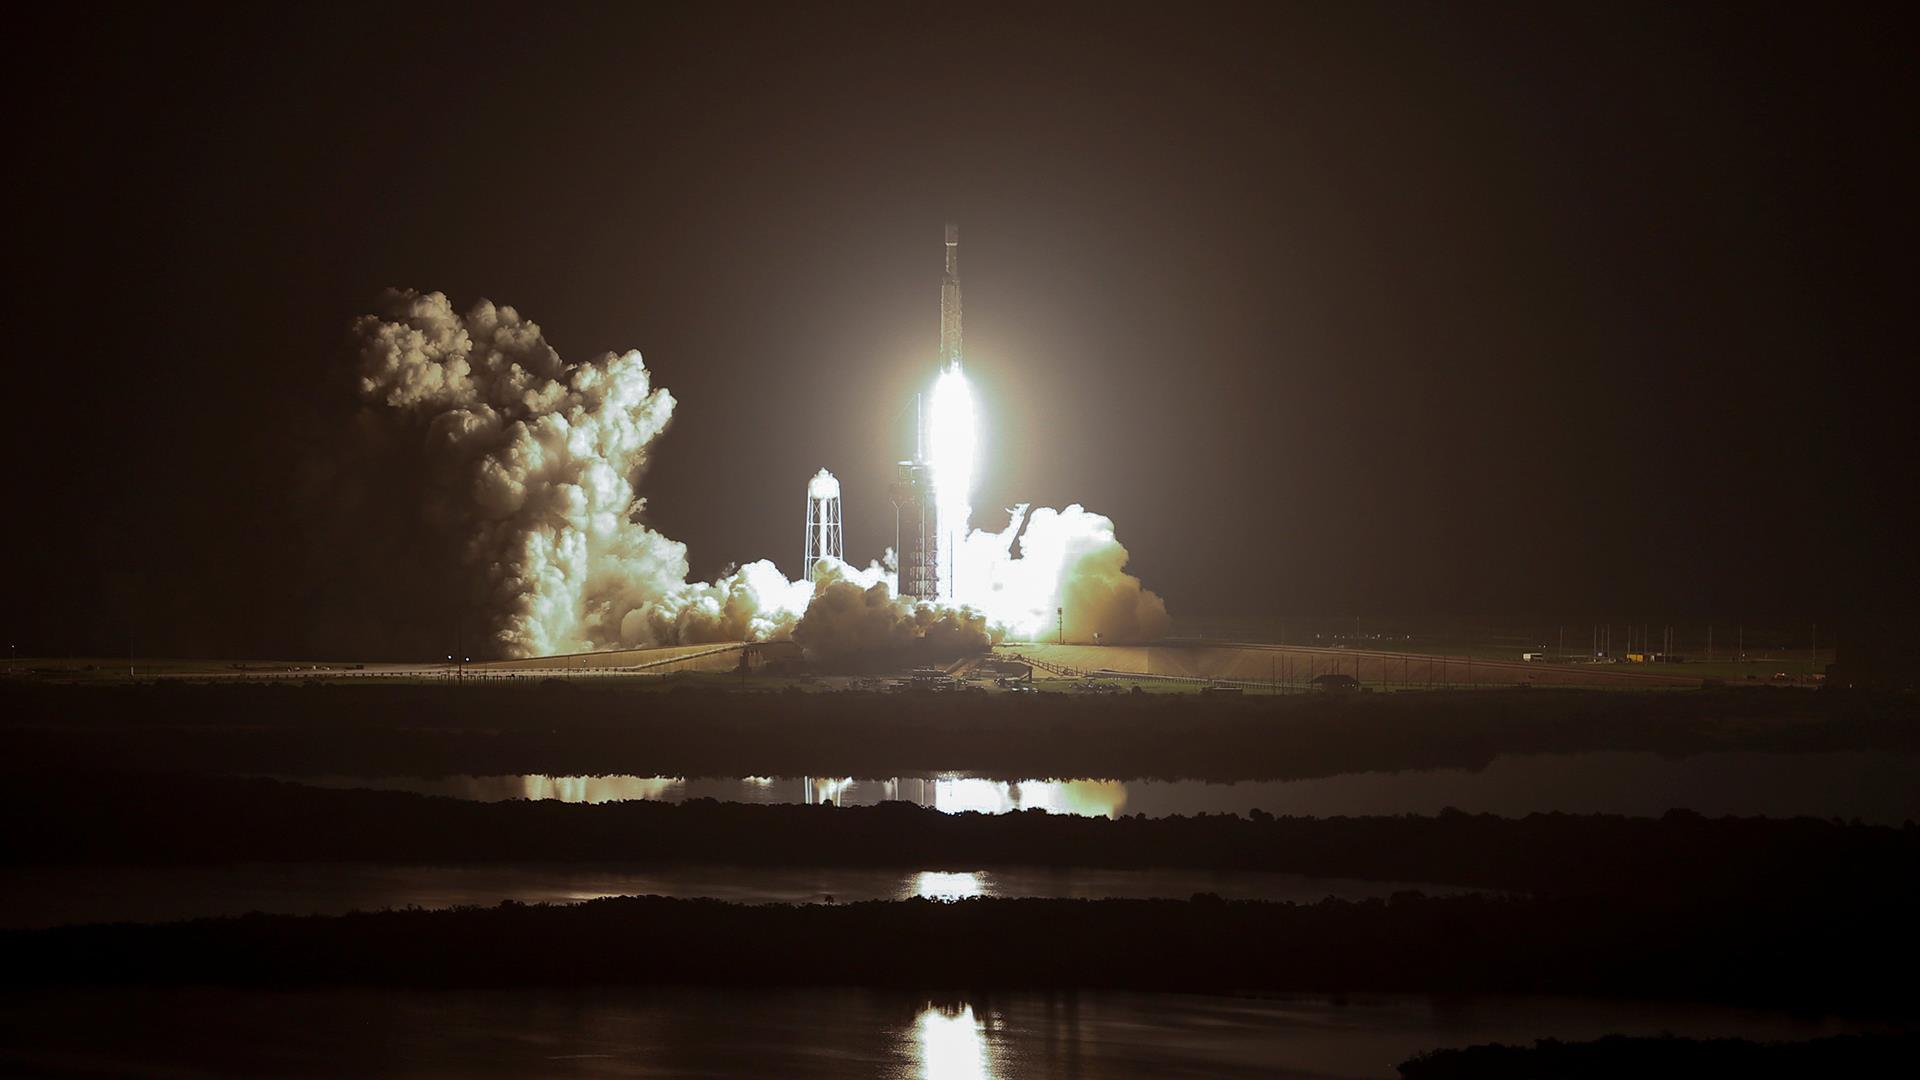 SpaceX launches Falcon Heavy rocket with 24 satellites, but core booster misses ocean platform